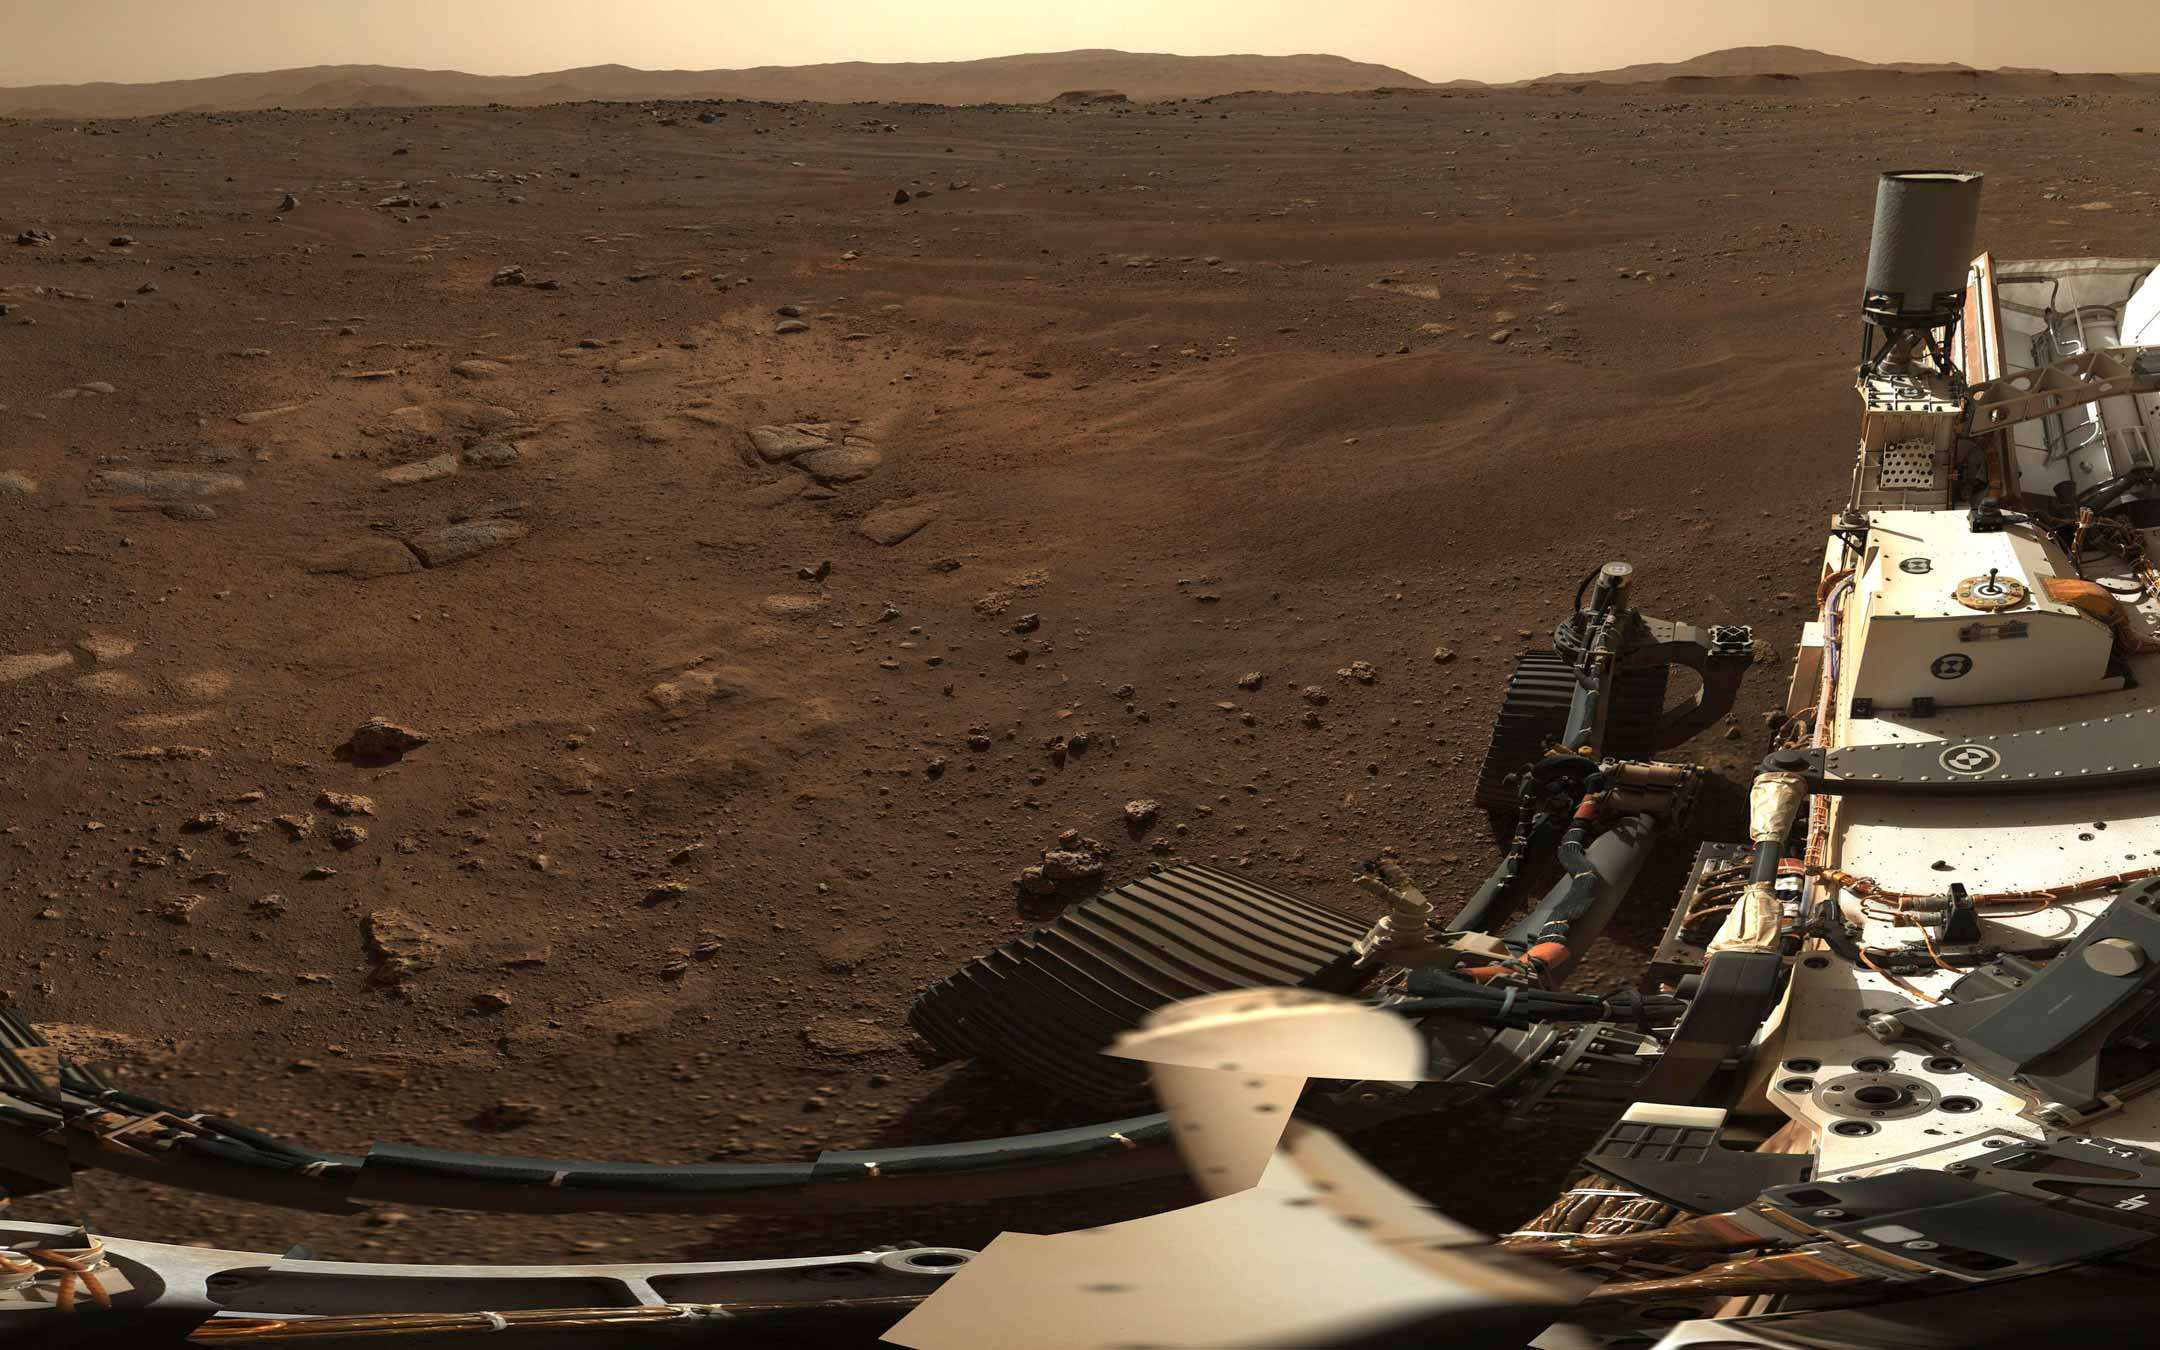 Perseverance shows us the panorama of Mars